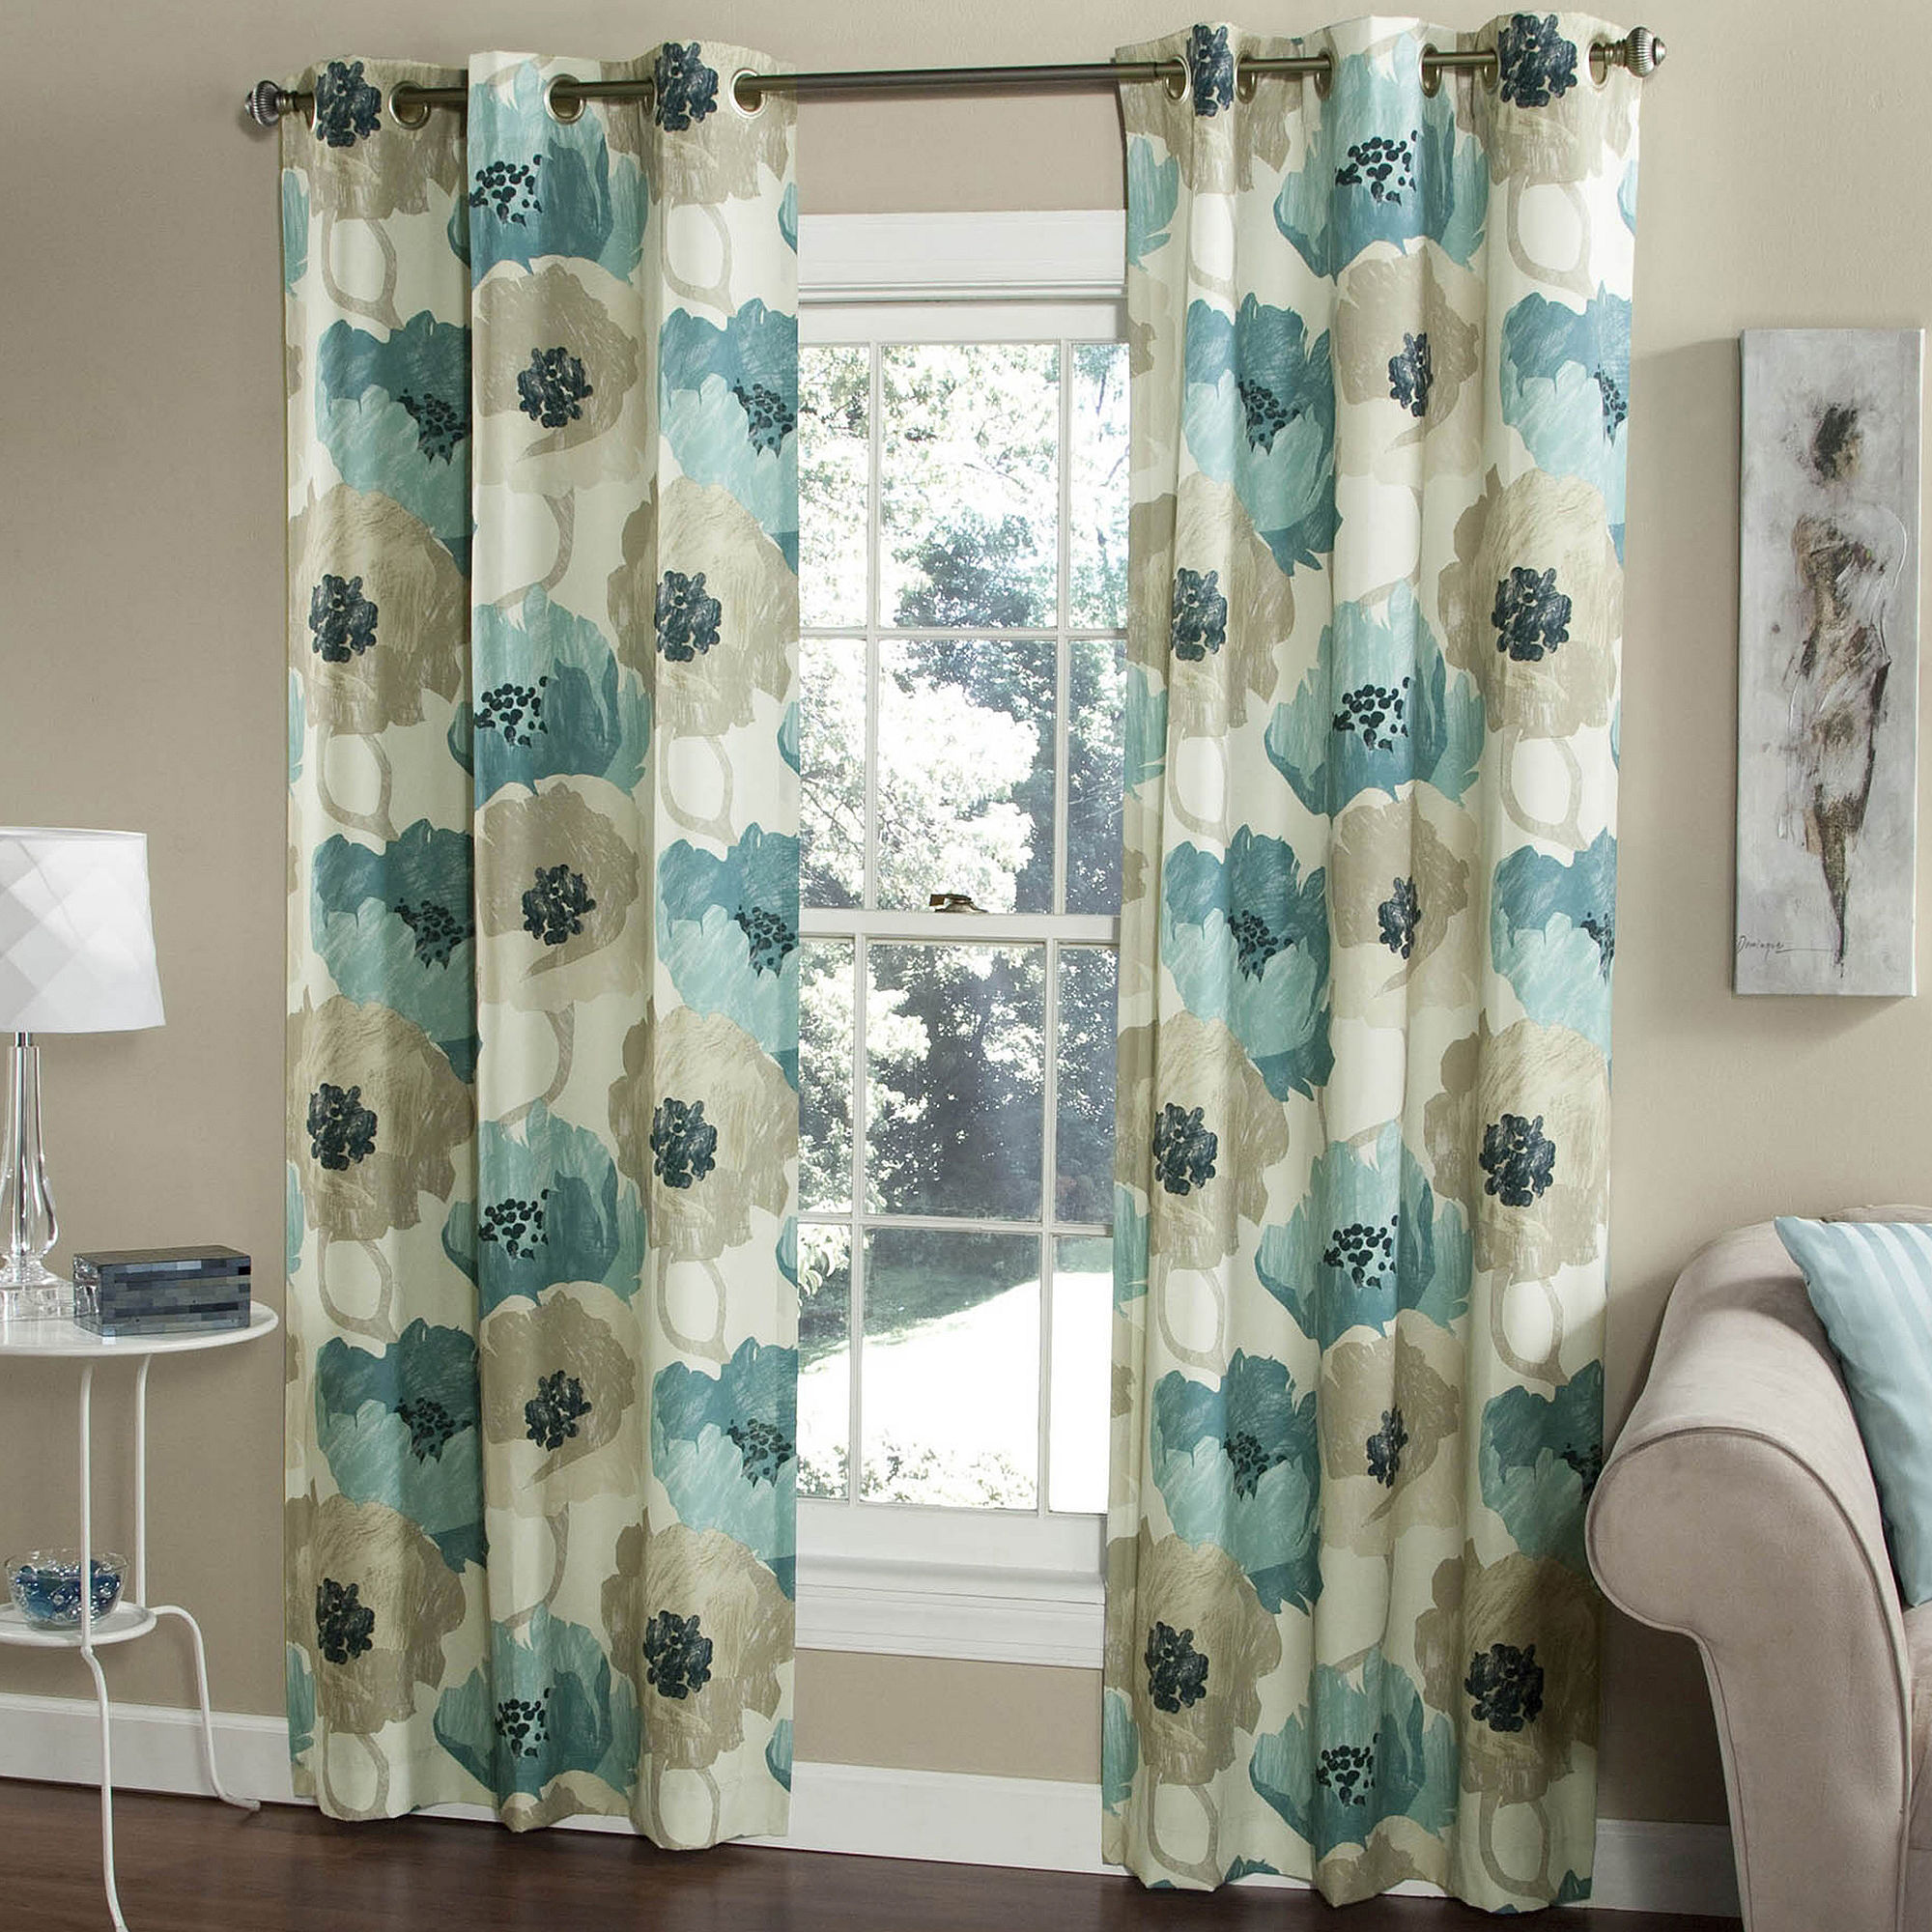 Jcpenney curtains living room - Jc Penneys Curtains And Drapes Bestcurtains Living Room Curtains Jcpenney